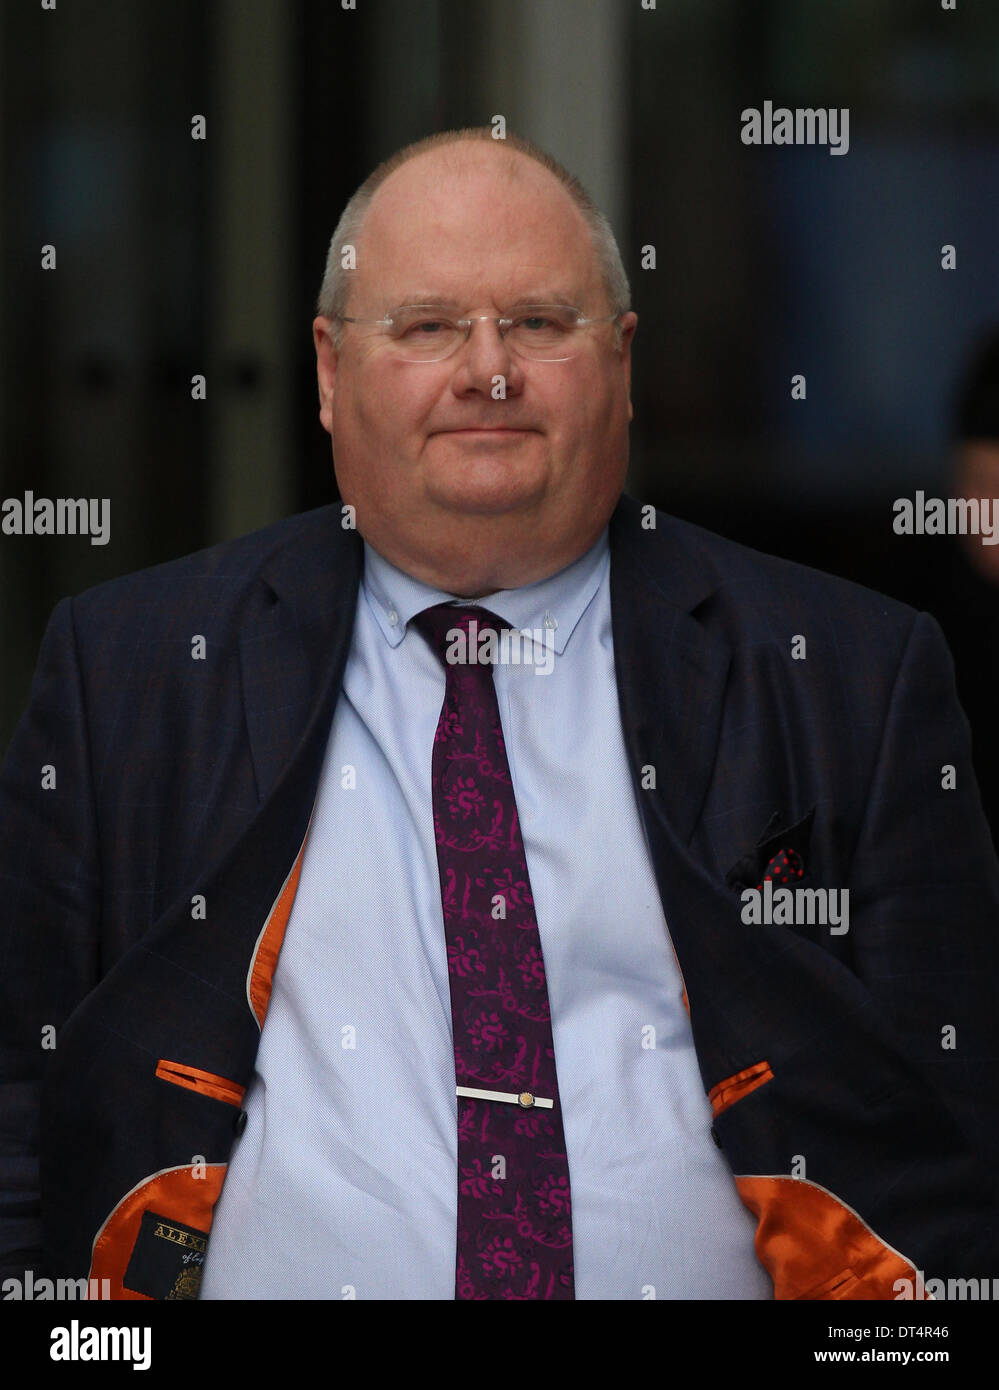 London, UK, 9th February 2014. Eric Pickles MP, Secretary of State for Communities and Local Government seen at Stock Photo